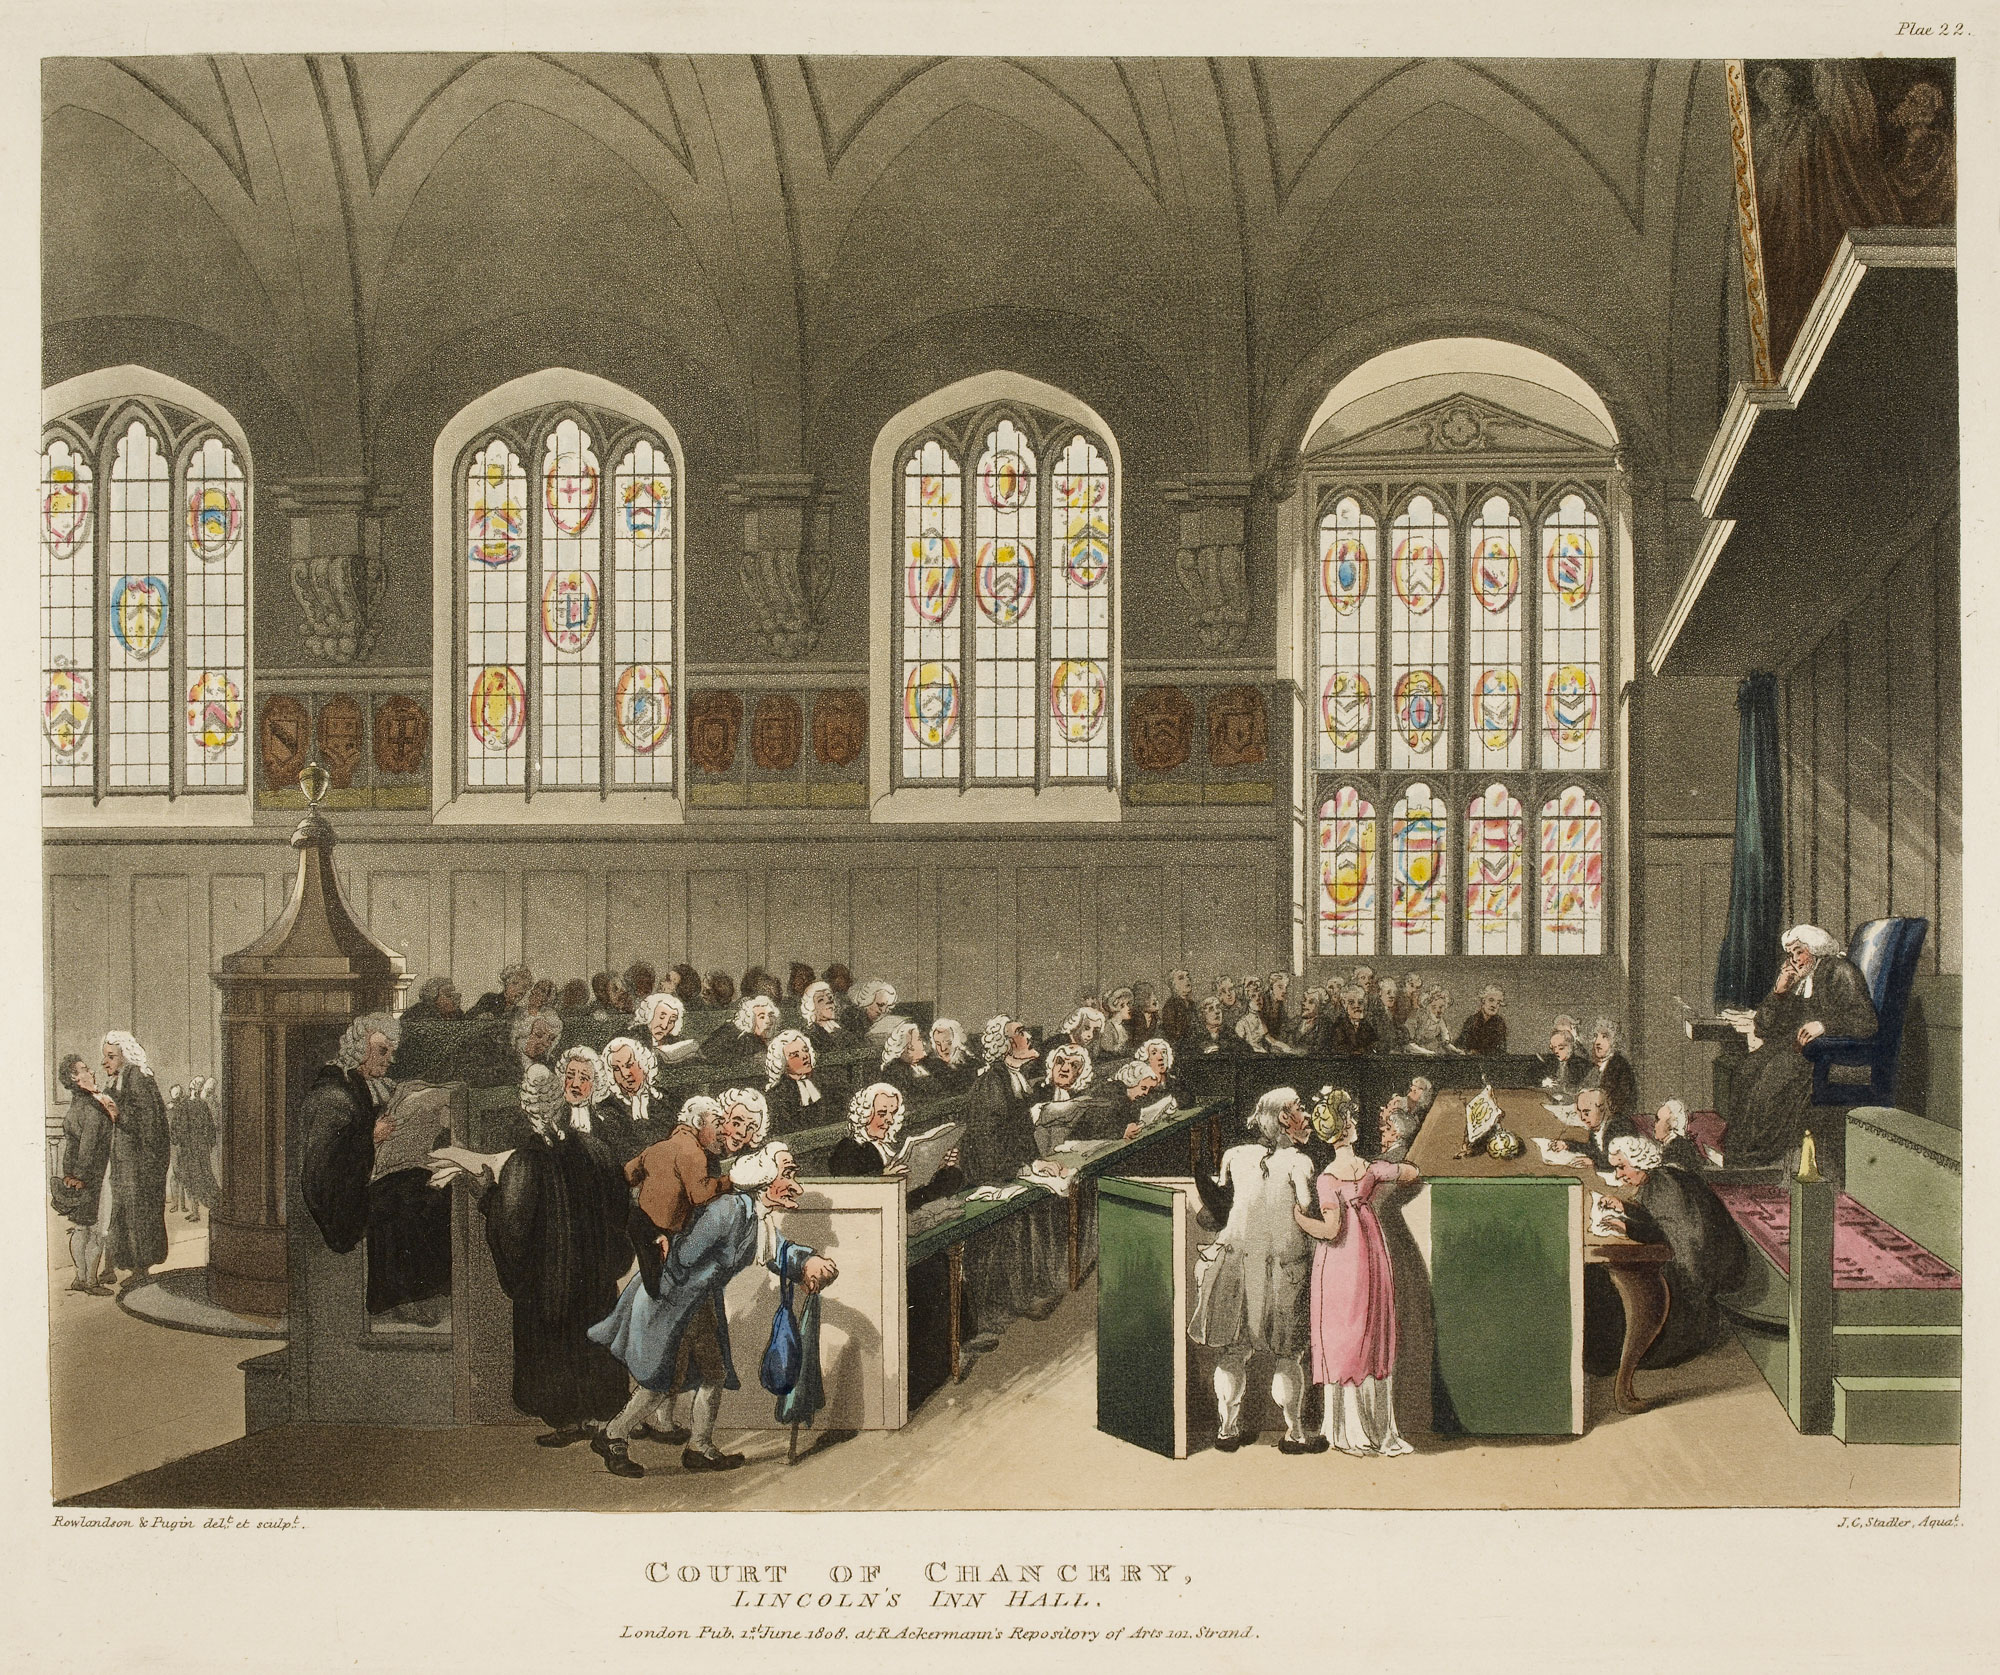 Illustration of the Court of Chancery, Lincoln's Inn Hall